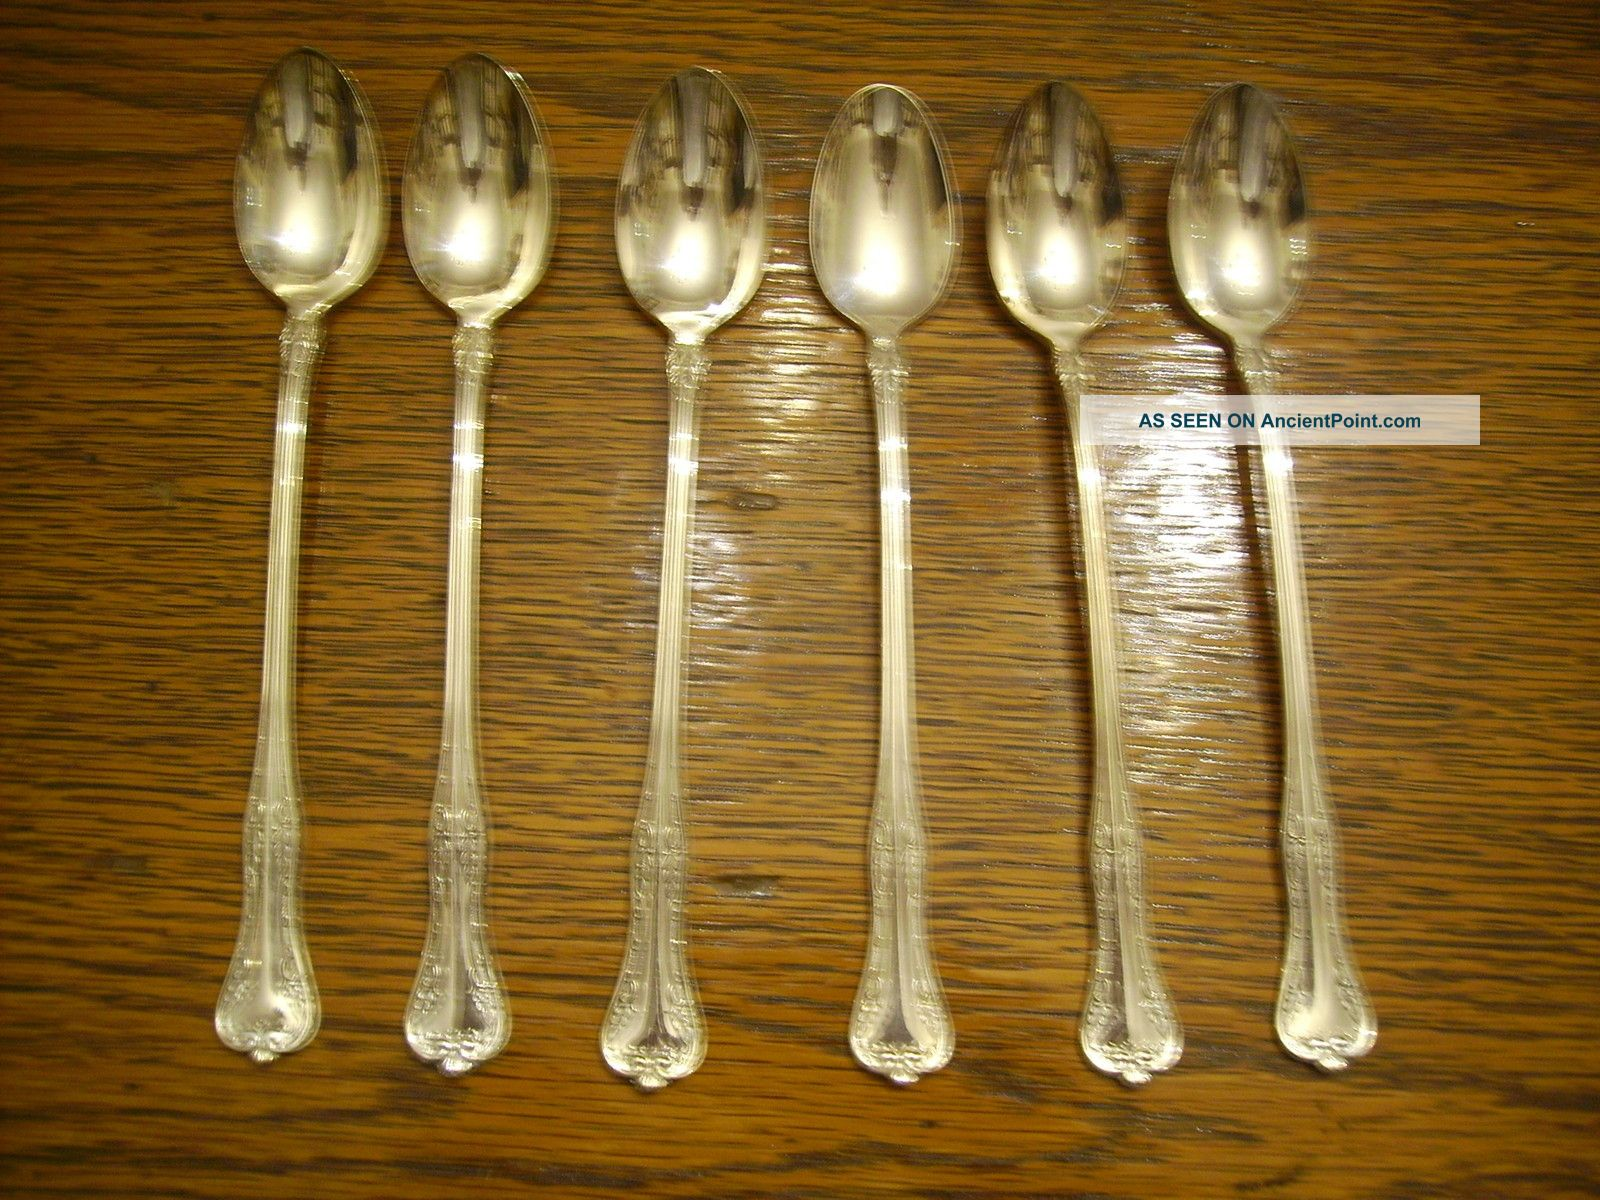 6 National Silverplate 1908 Queen Elizabeth Iced Tea Spoons Rogers National photo